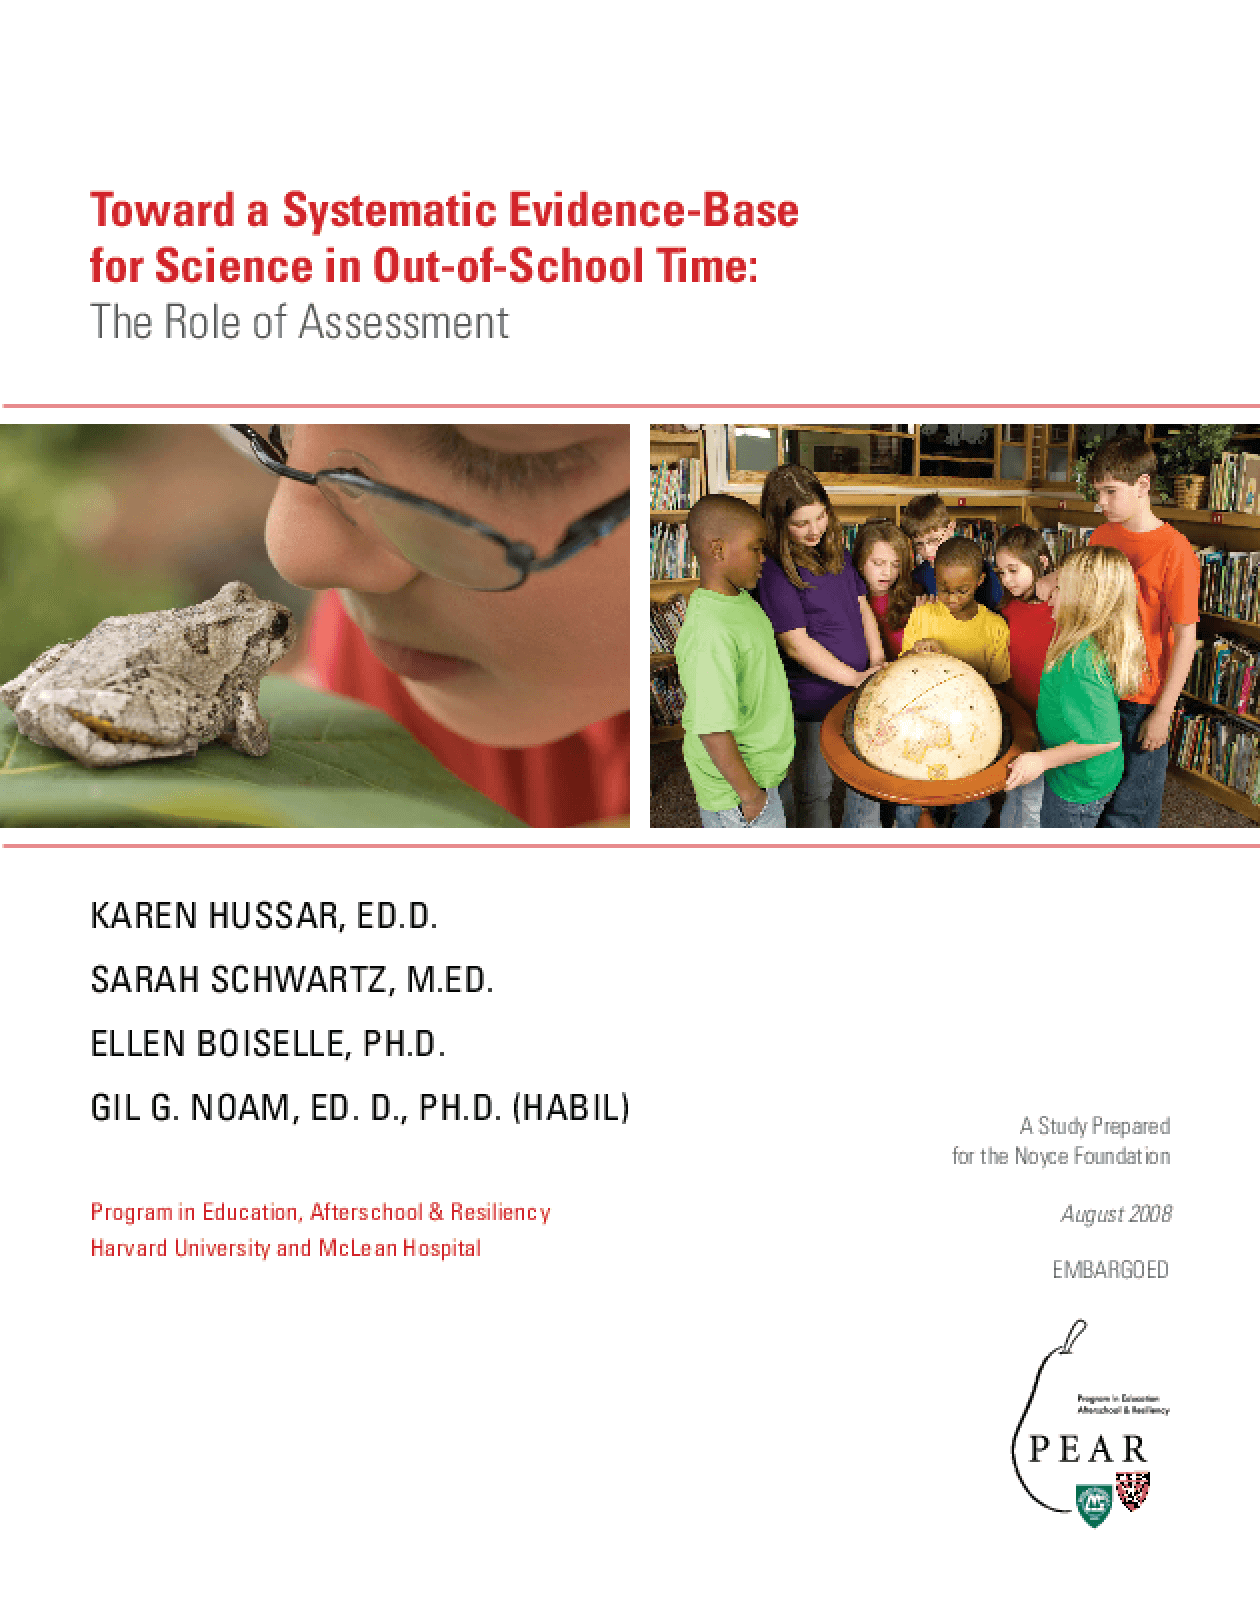 Toward a Systematic Evidence-Base for Science in Out-of-School Time: The Role of Assessment